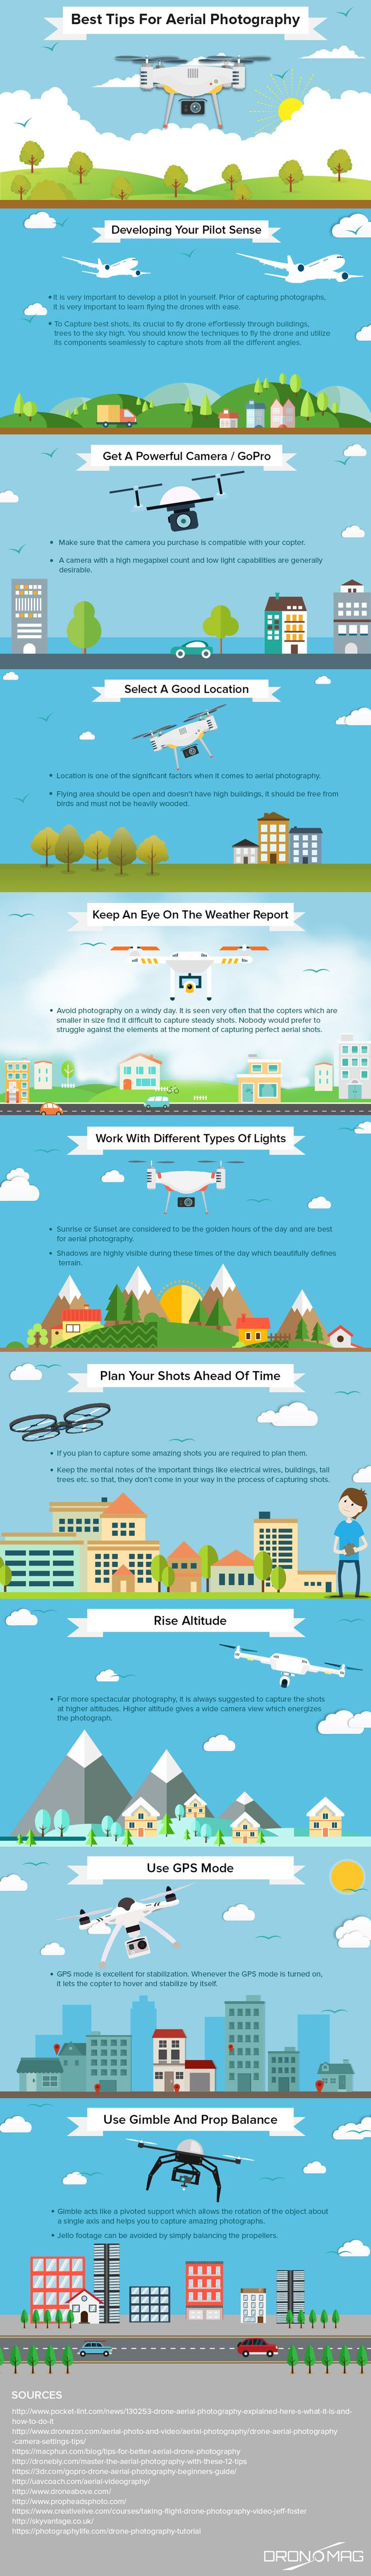 Tips for Using Drone for Aerial Photography Infographic. Topic: camera, gadget